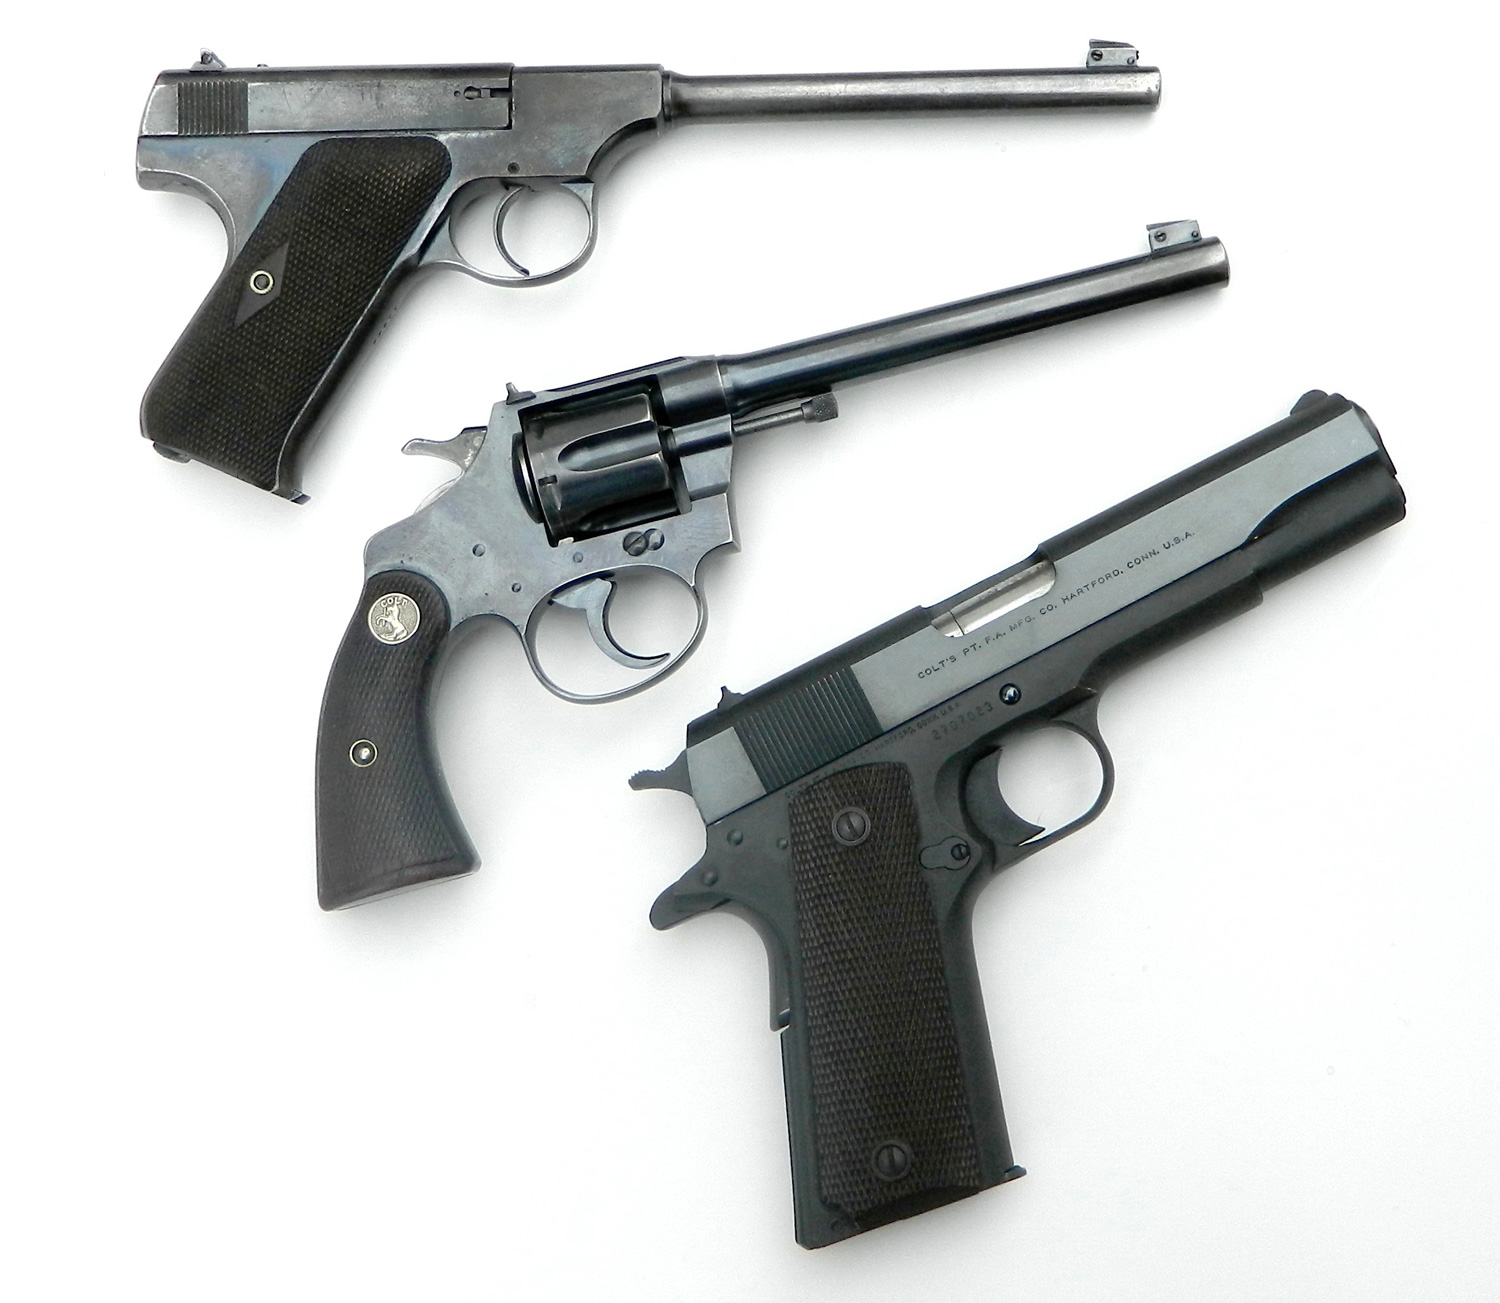 Three Colt .22s. Two from 1926 and one from 1948